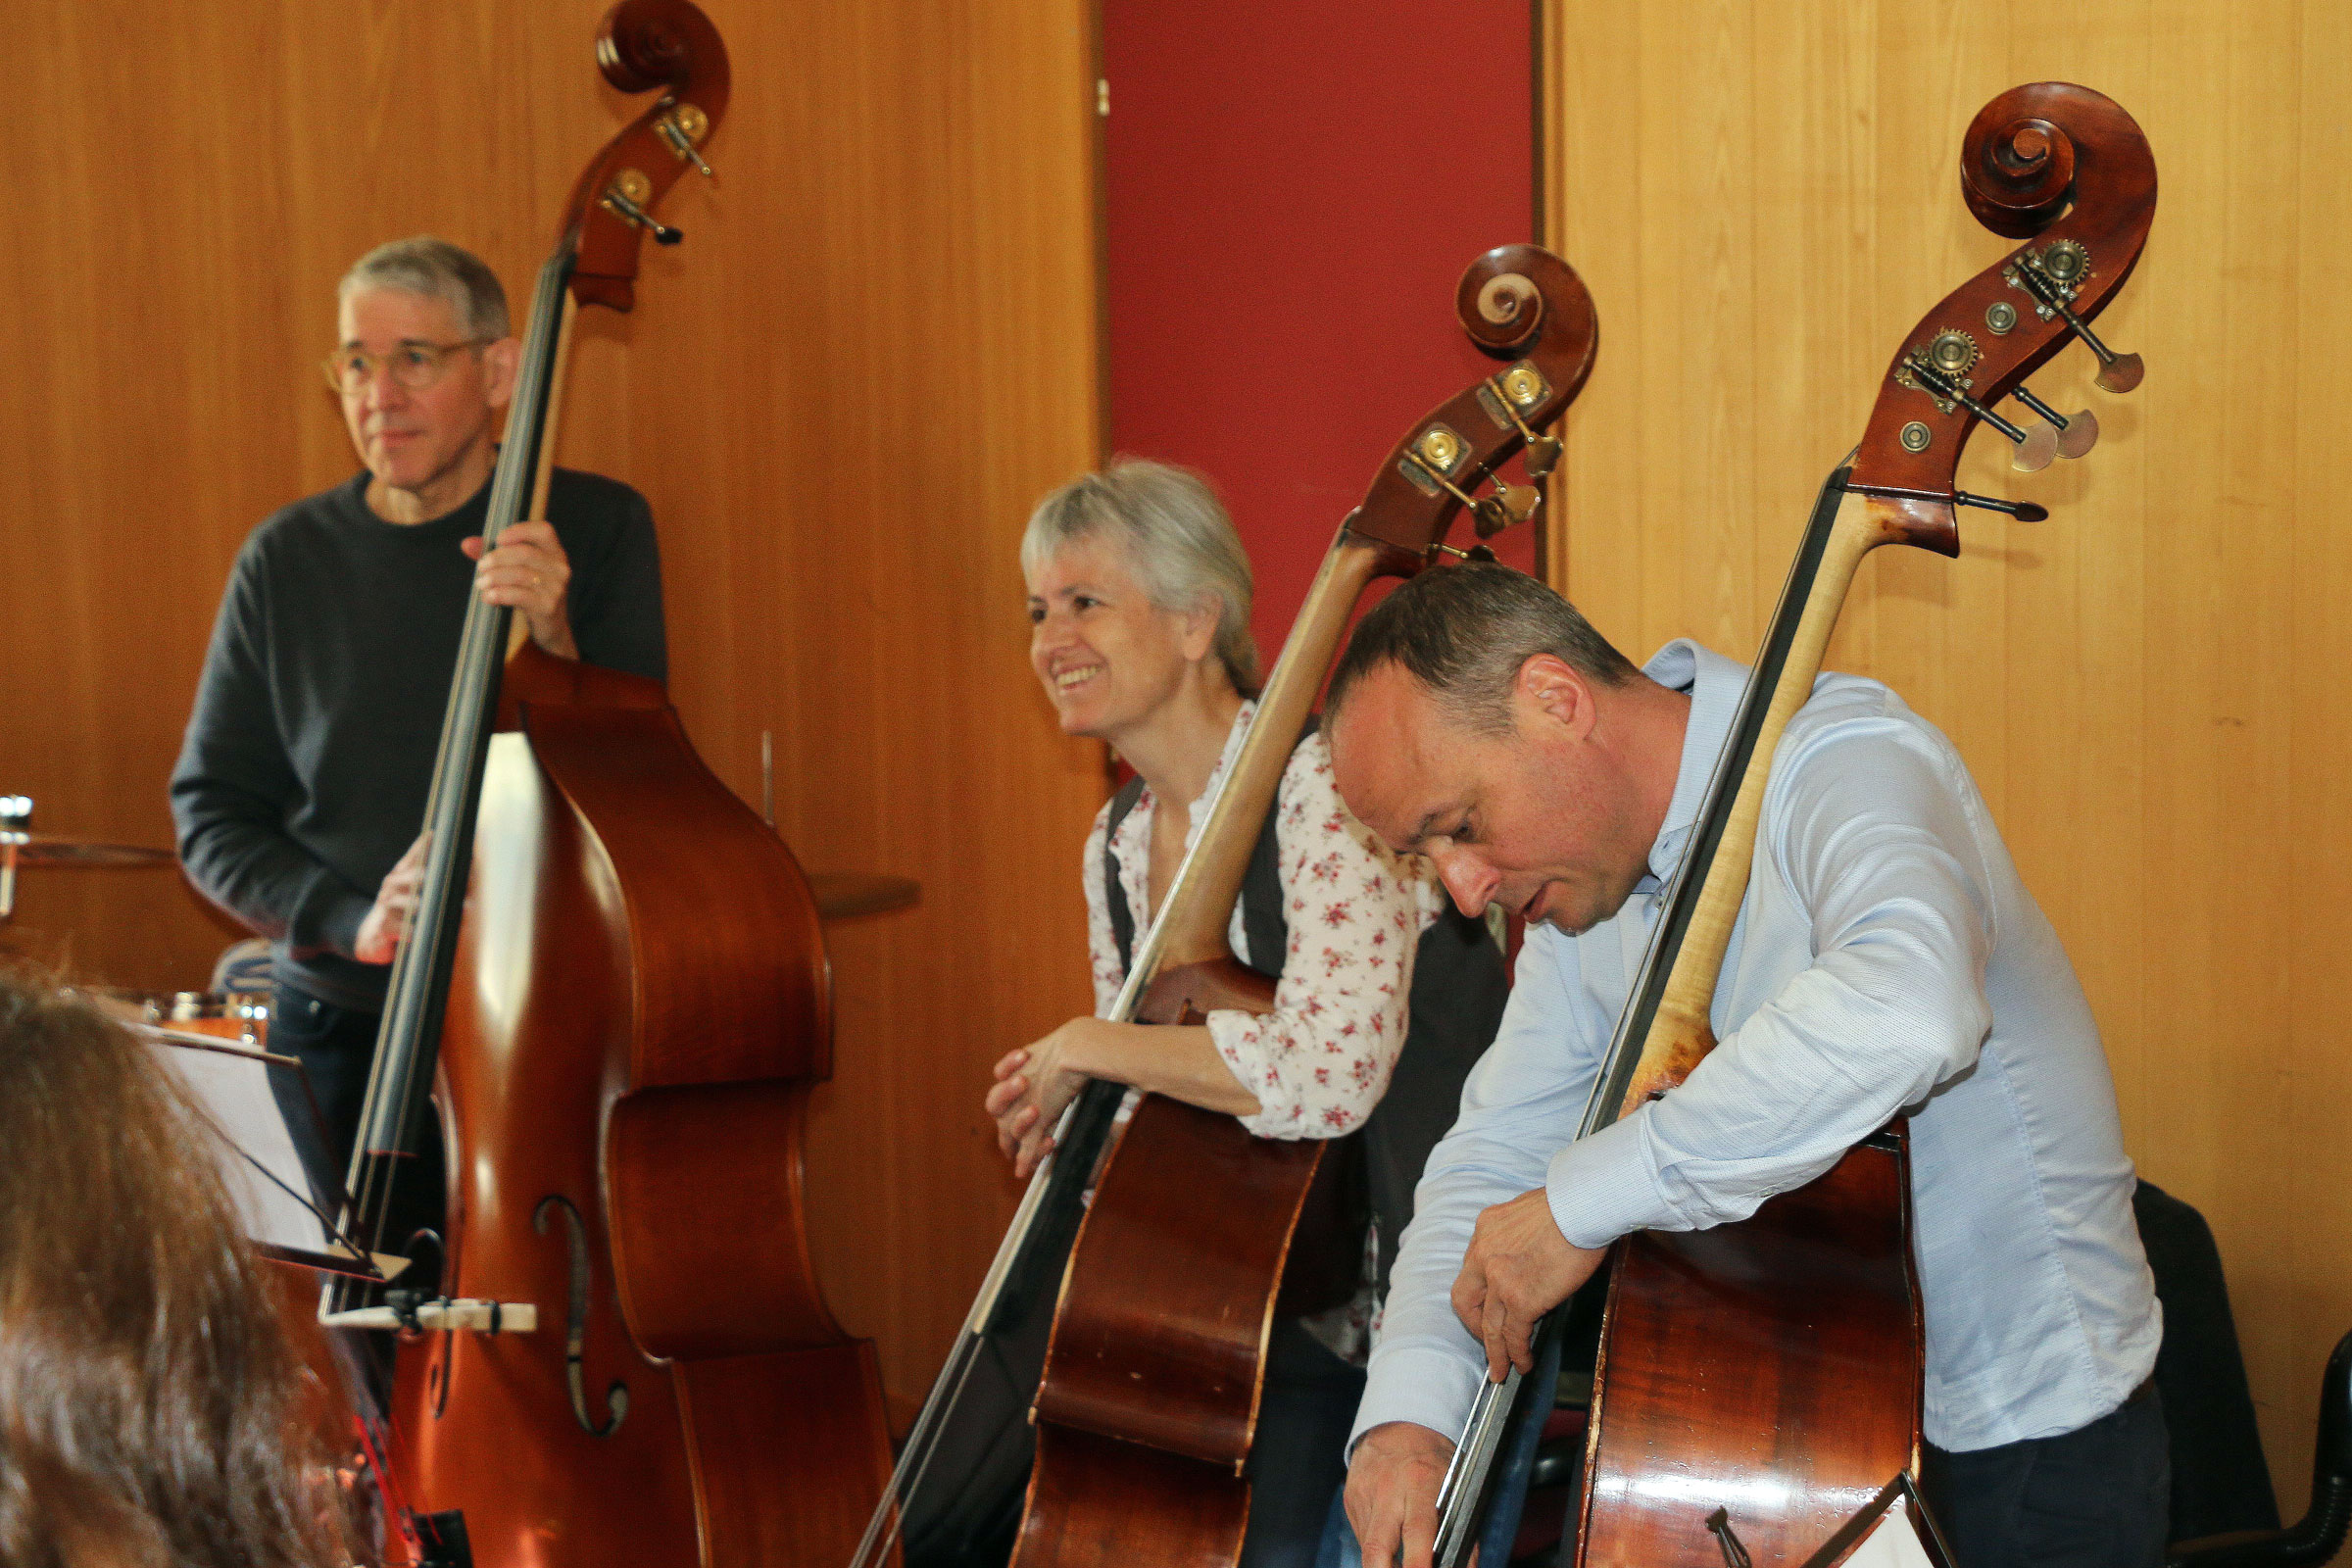 Kontrabass-Klinik am Jazzworkshop Interlaken 2019 (Foto: zvg.)